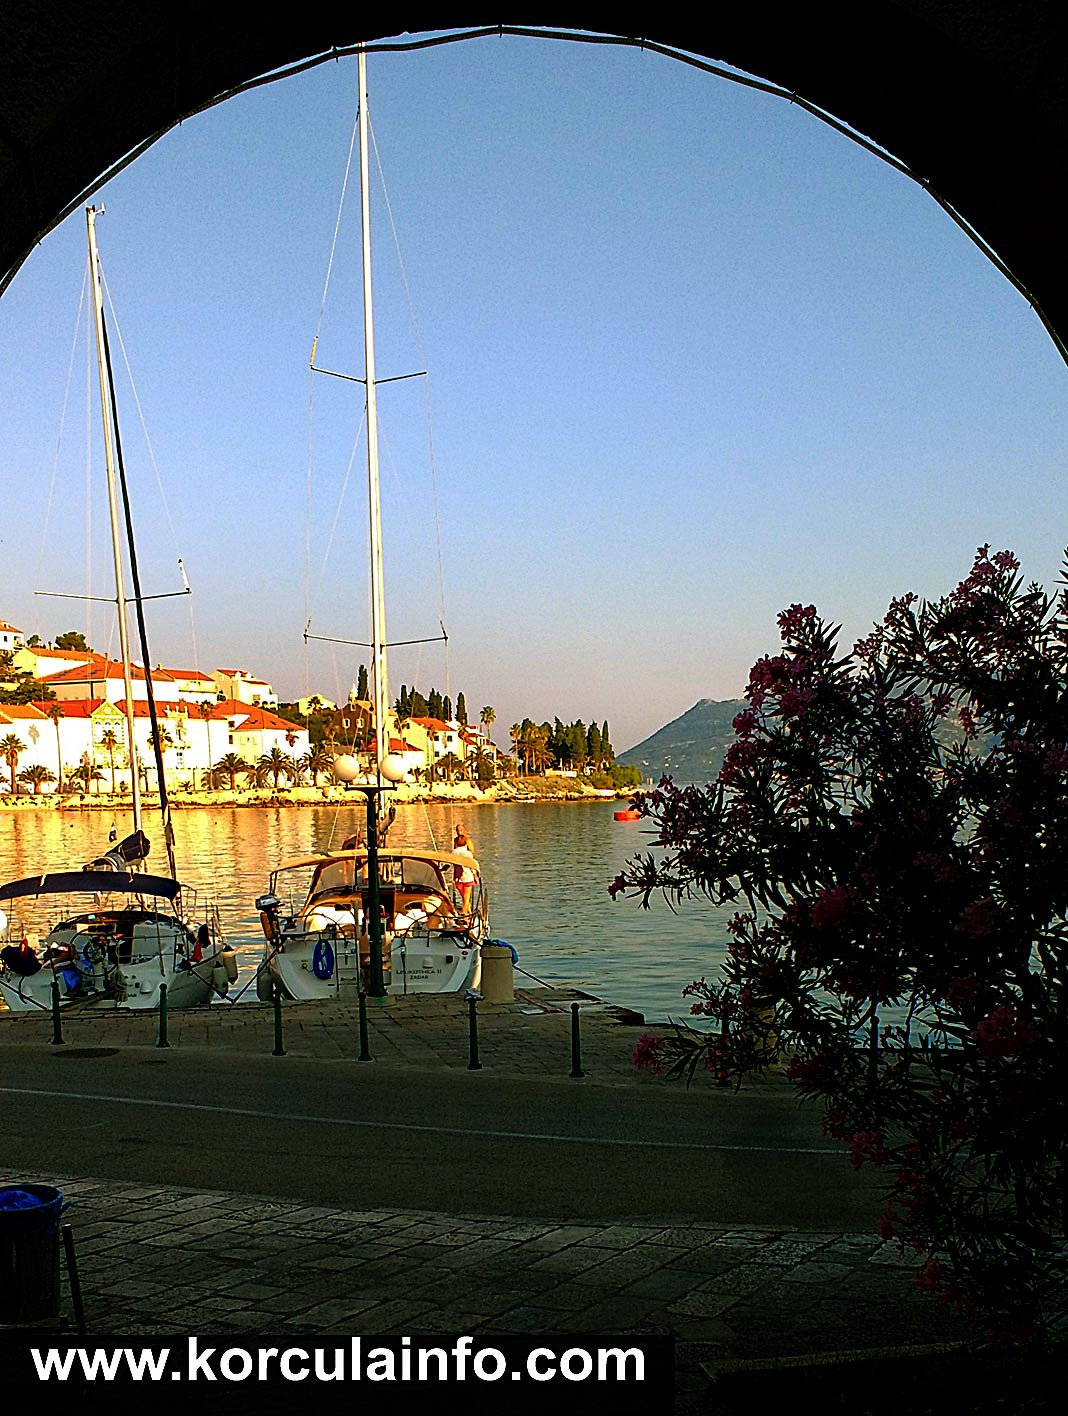 Sailing Boats in Korcula Port (Early Morning)